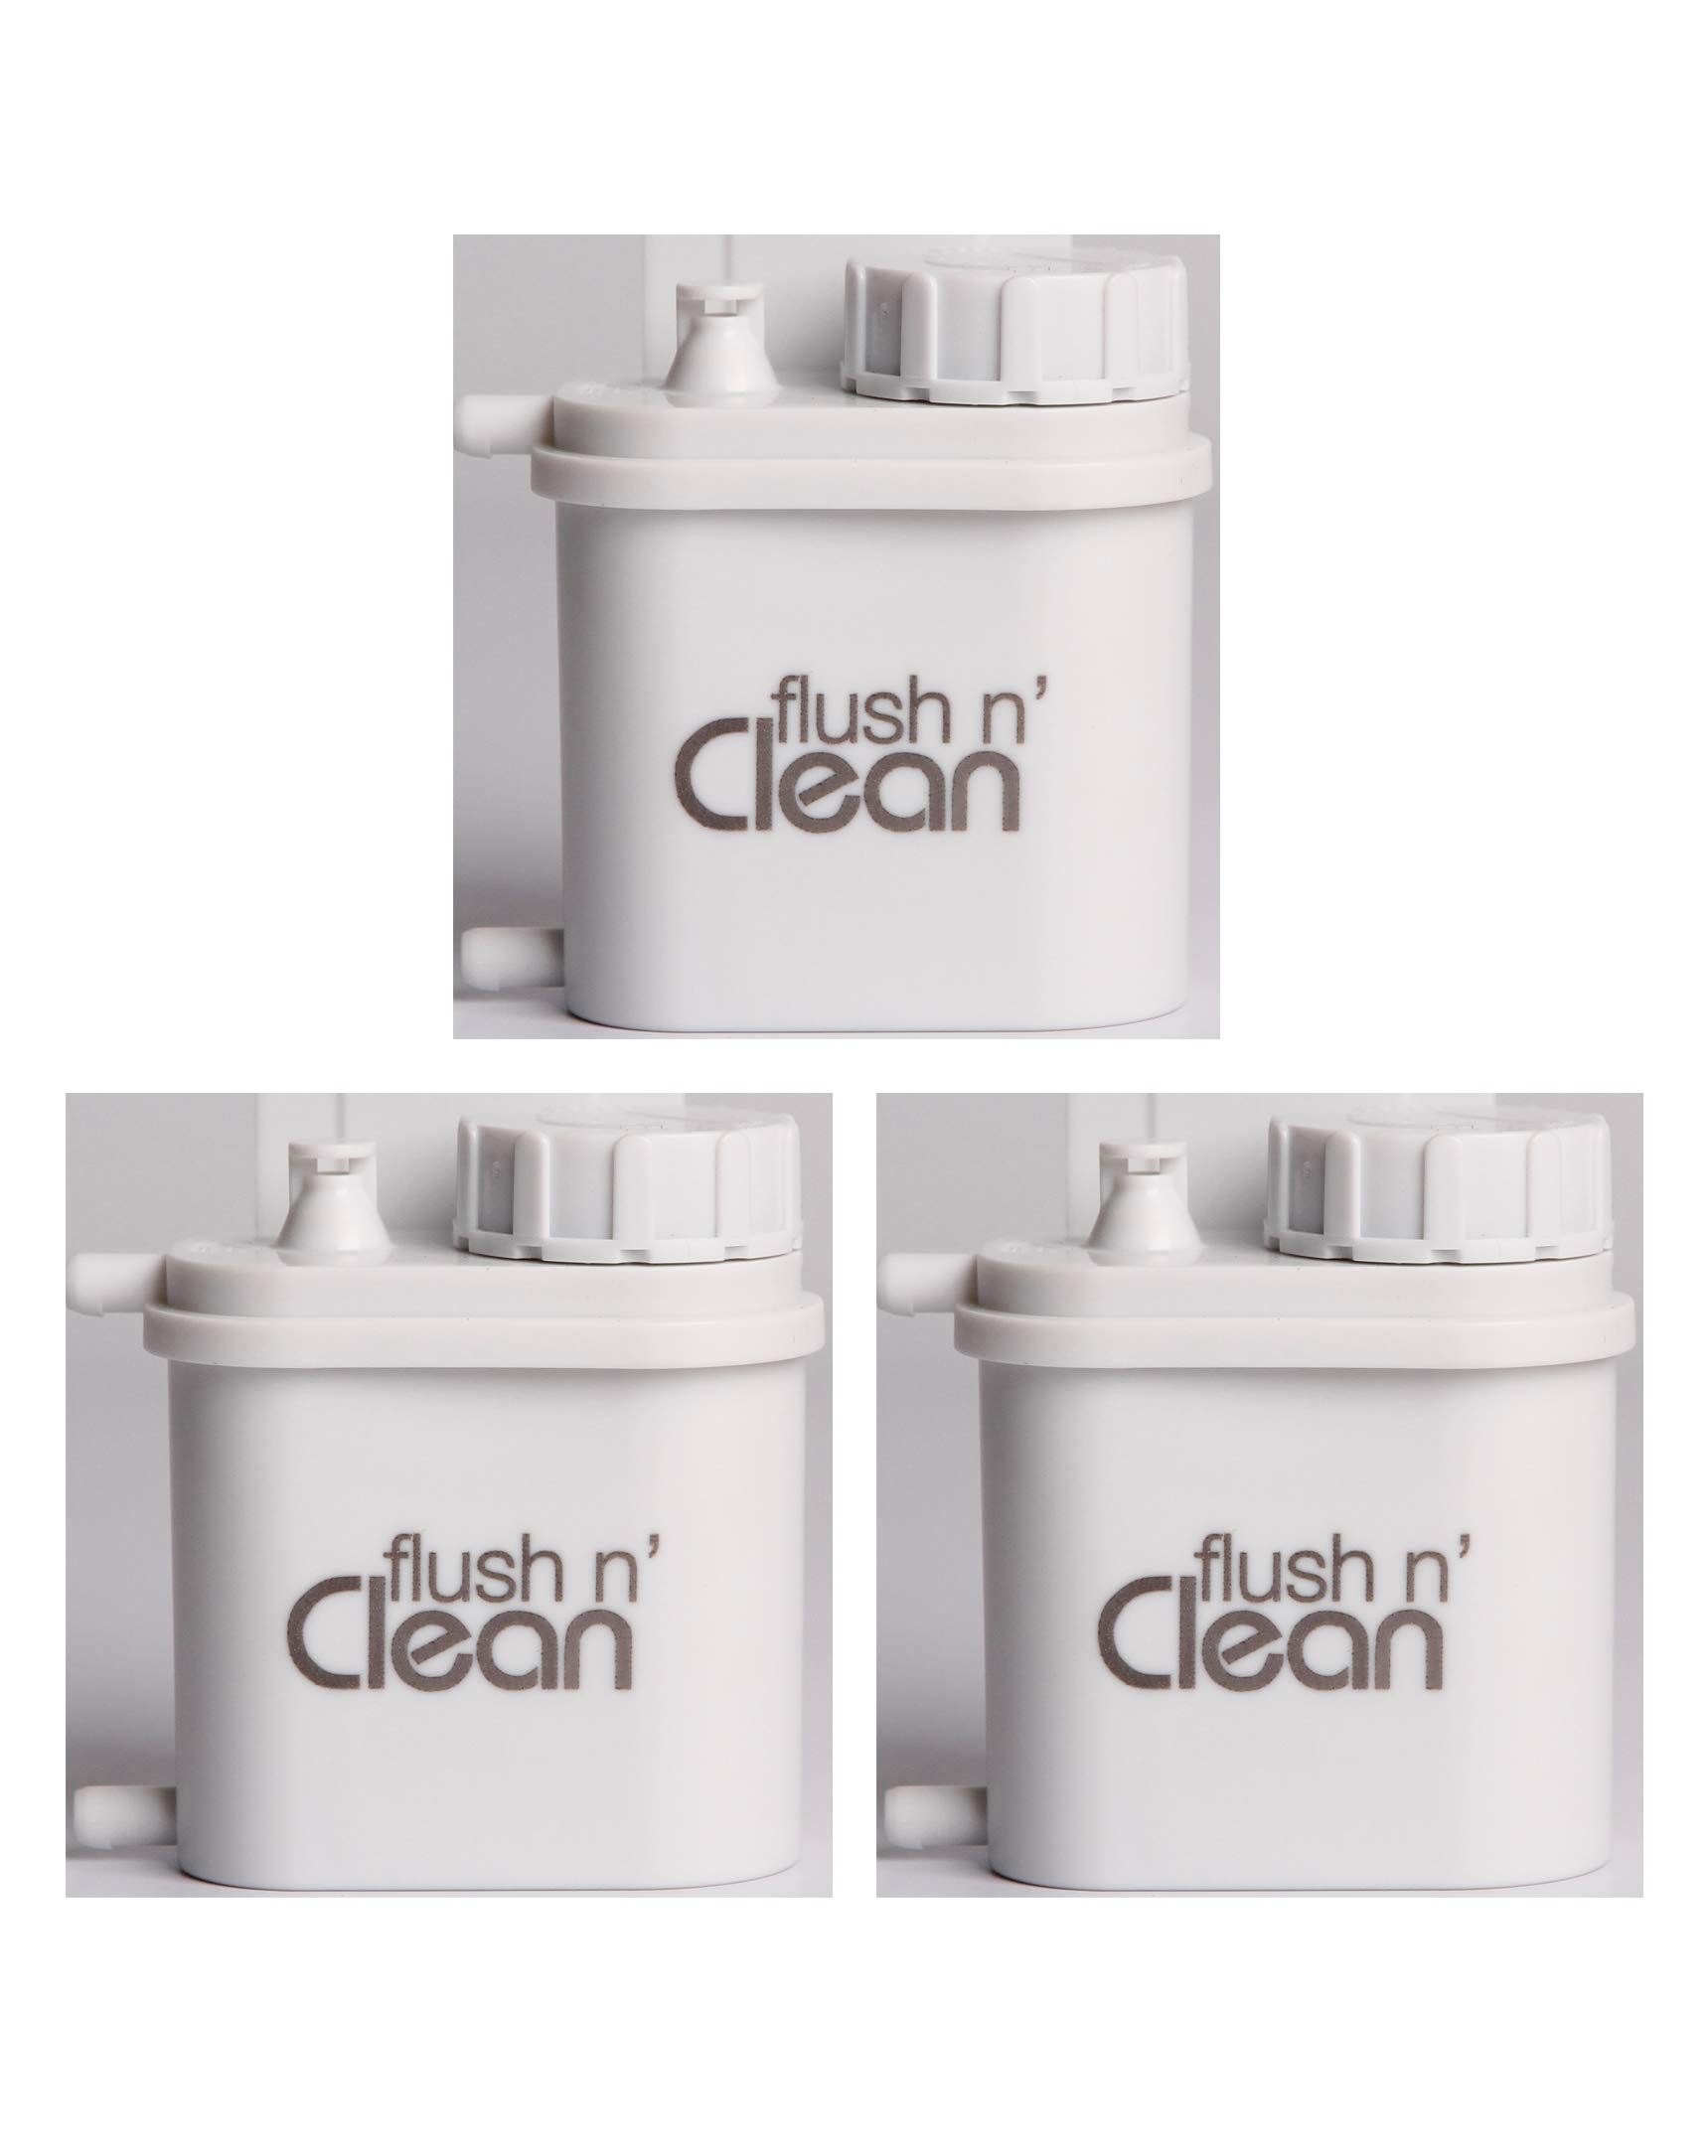 Flush n' Clean Toilet Bowl Cleaner Uses Standard Bromine Tablets - No Special Cartridges - Tablets Included - Fast Easy Installation by Flush*Saver